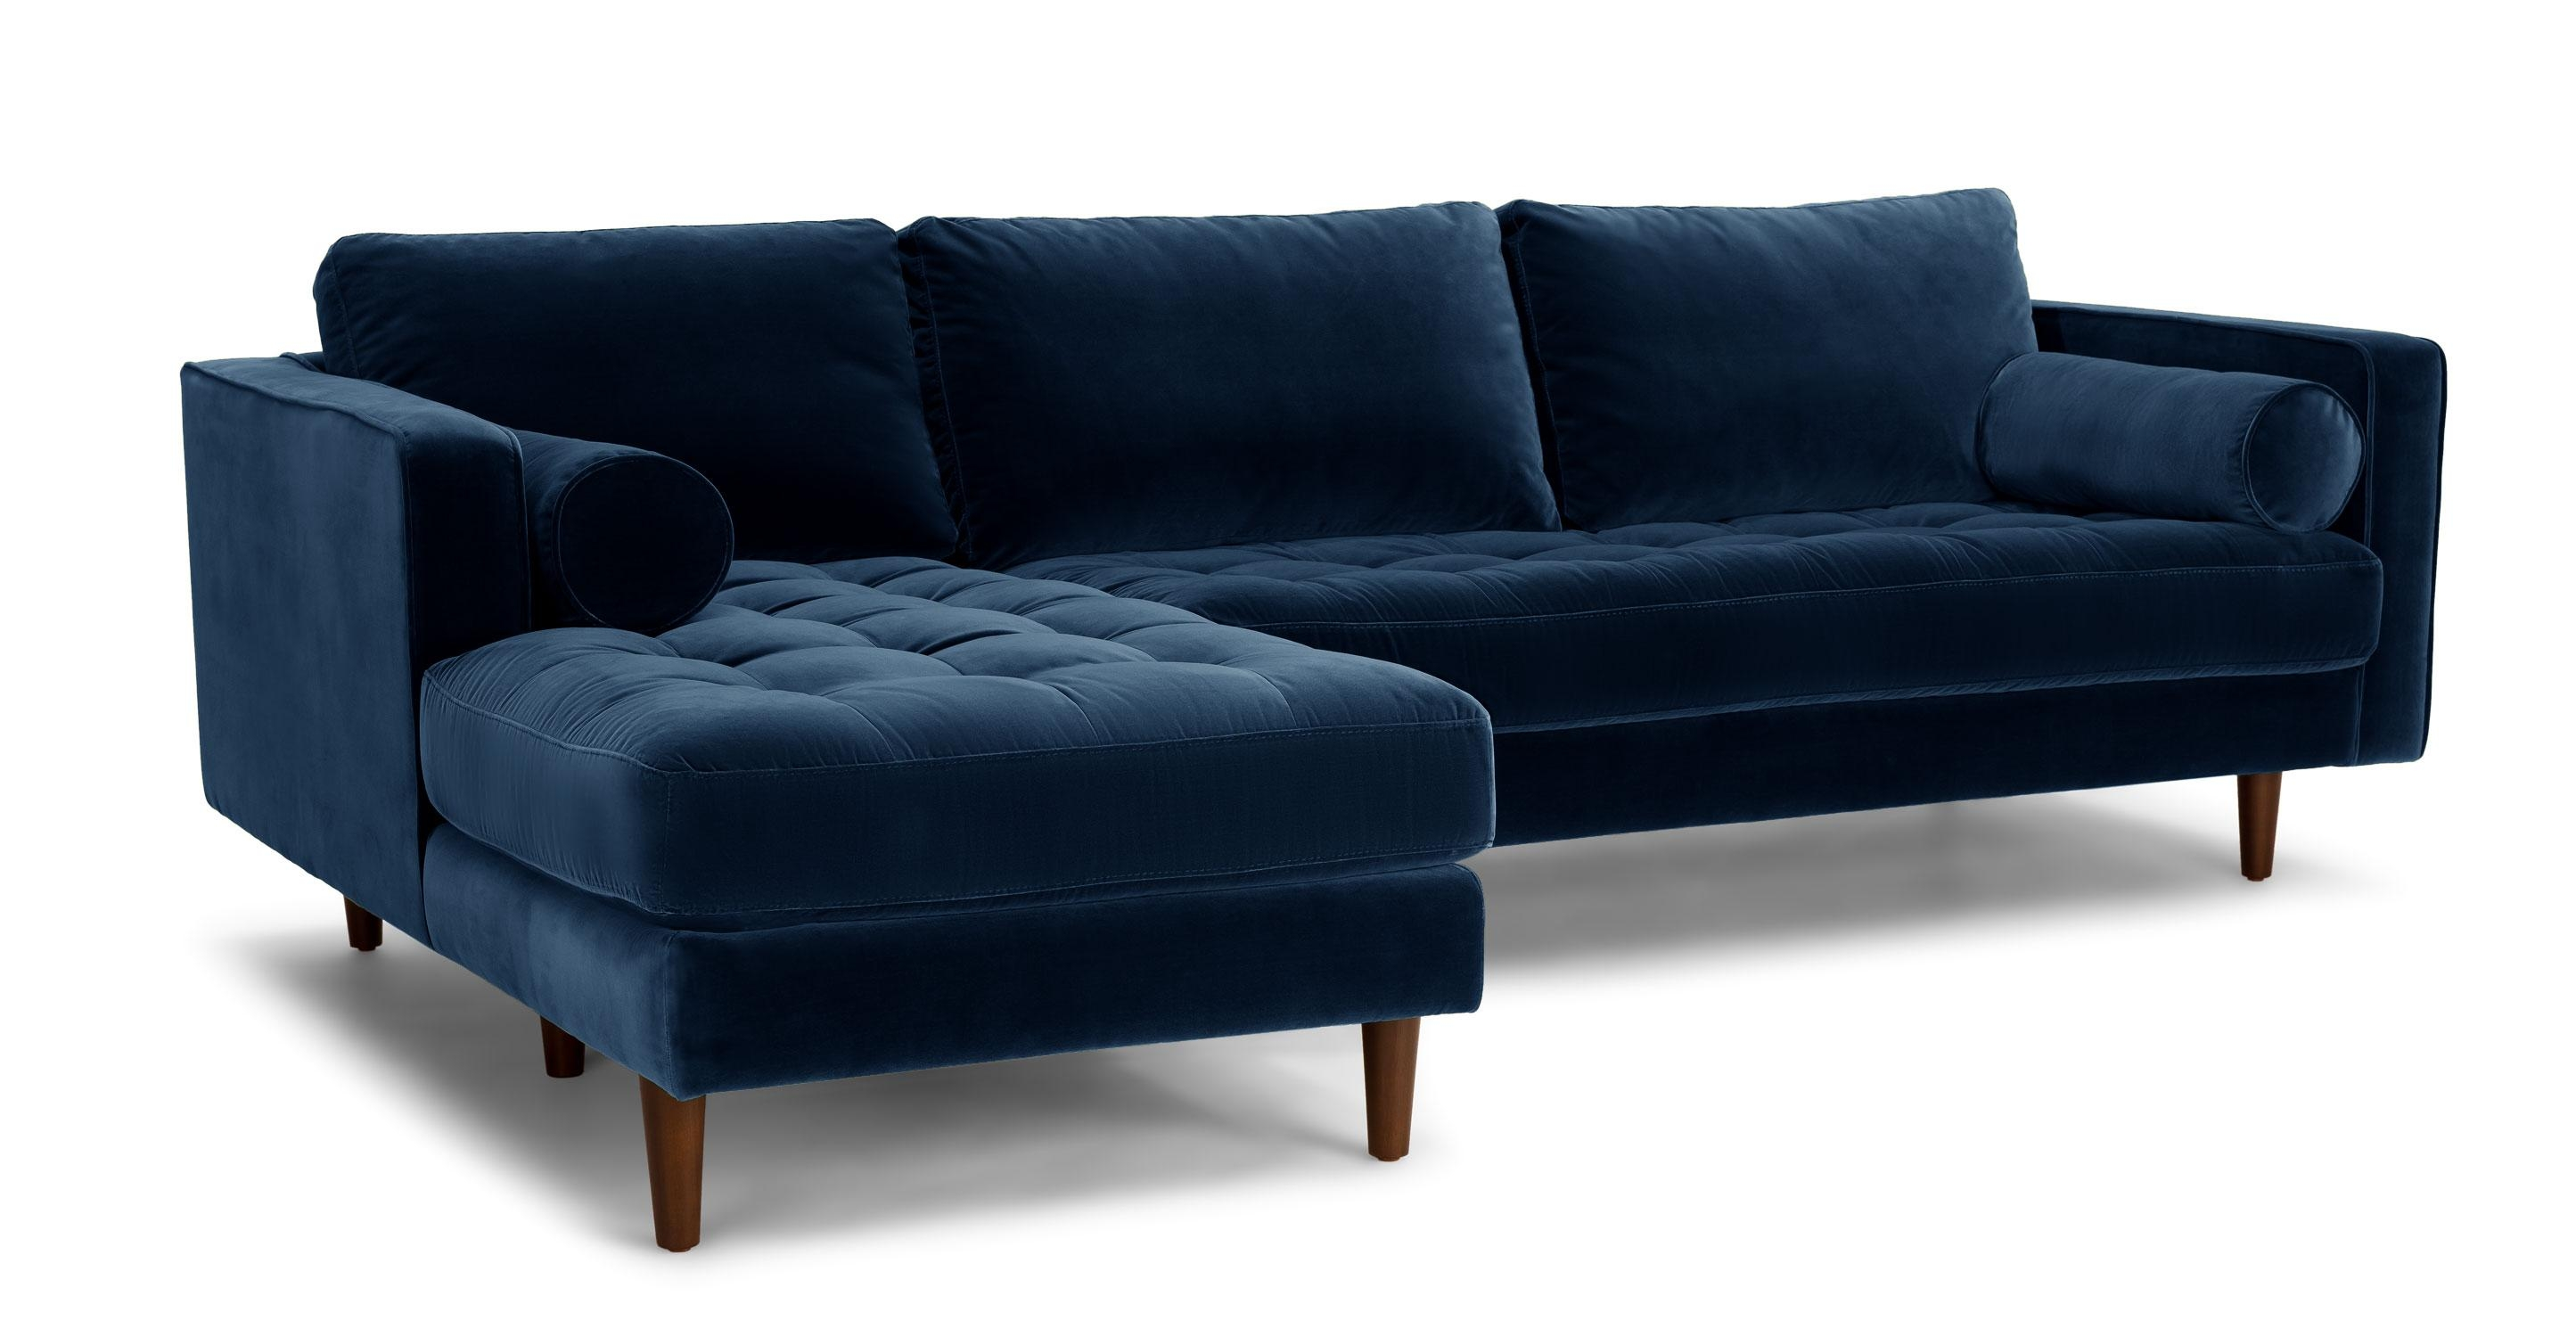 Sofas Center : 43 Shocking Mid Century Modern Sectional Sofa Throughout Mid Century Modern Sectional (Image 16 of 20)